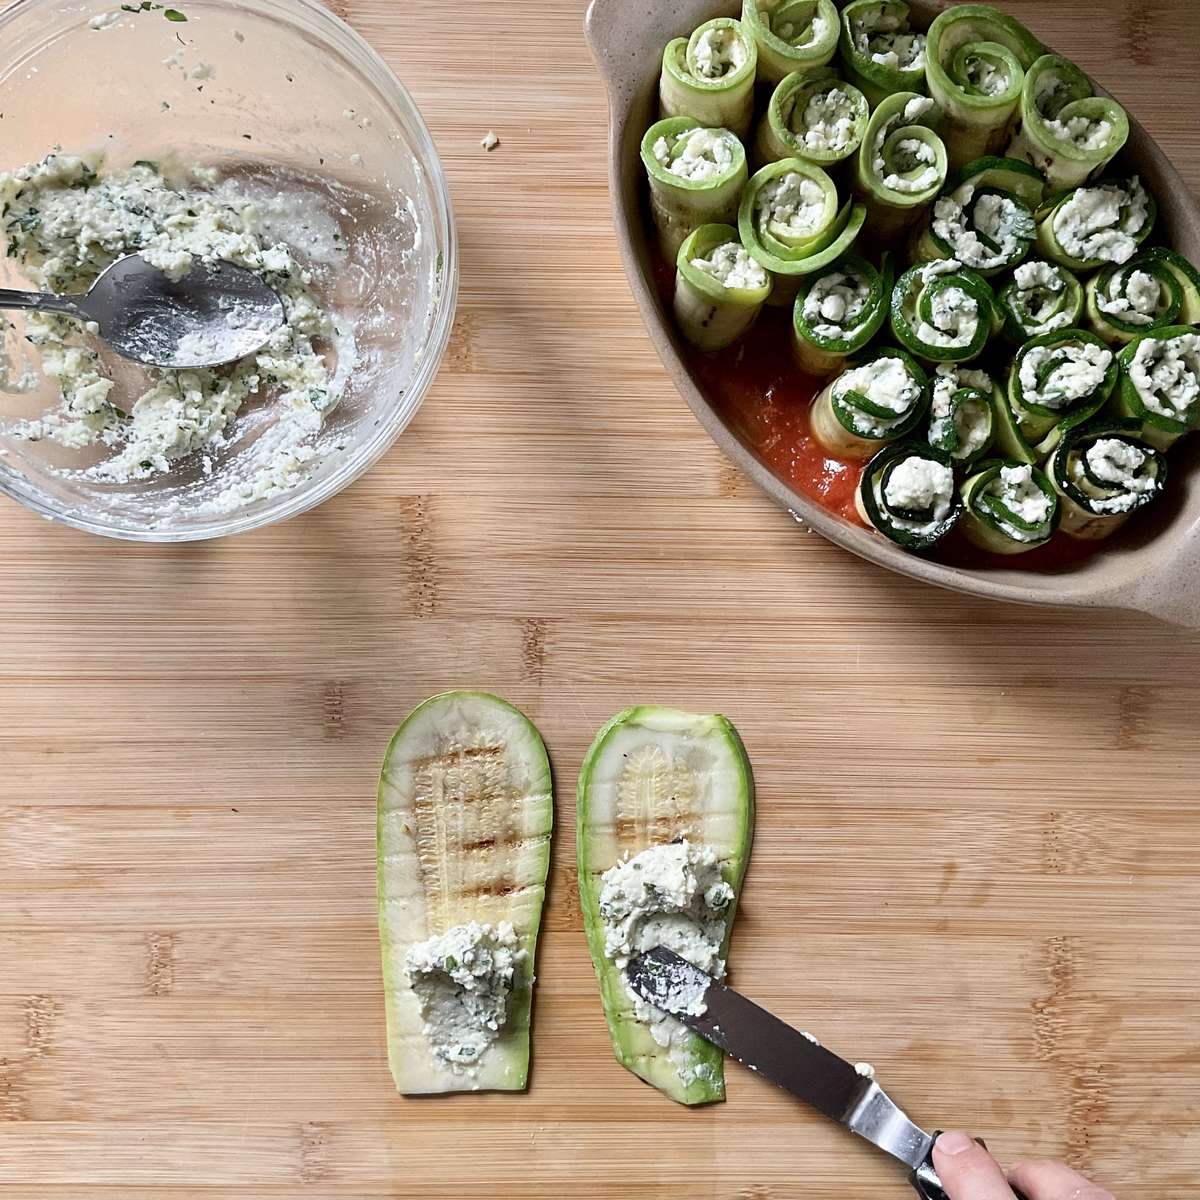 Ricotta filling being spread on grilled zucchini.